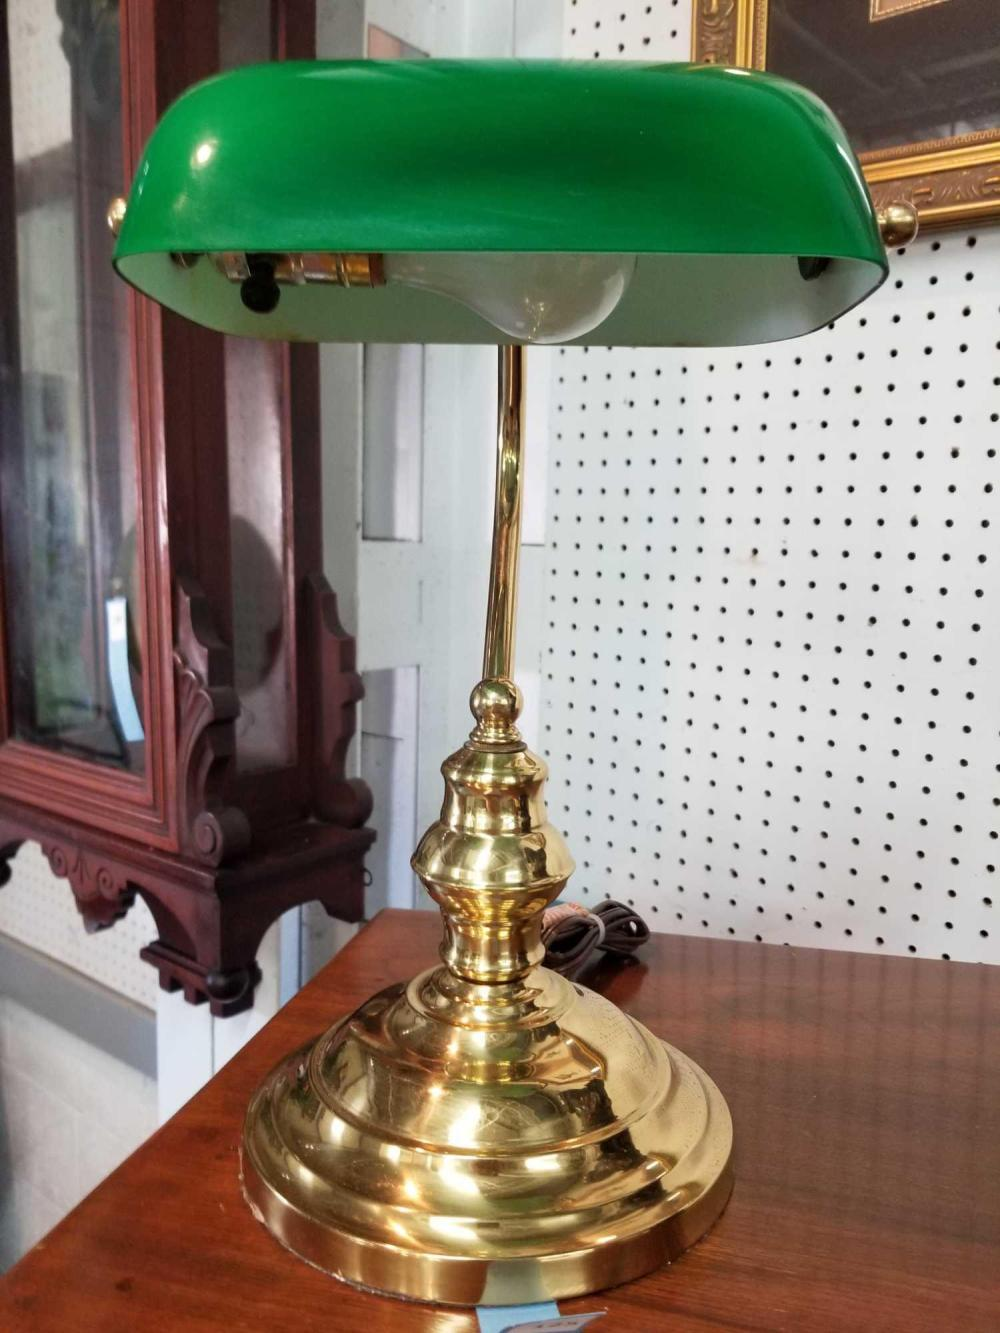 REPRODUCTION GLASS BANKER'S LAMP W/ GREEN SHADE